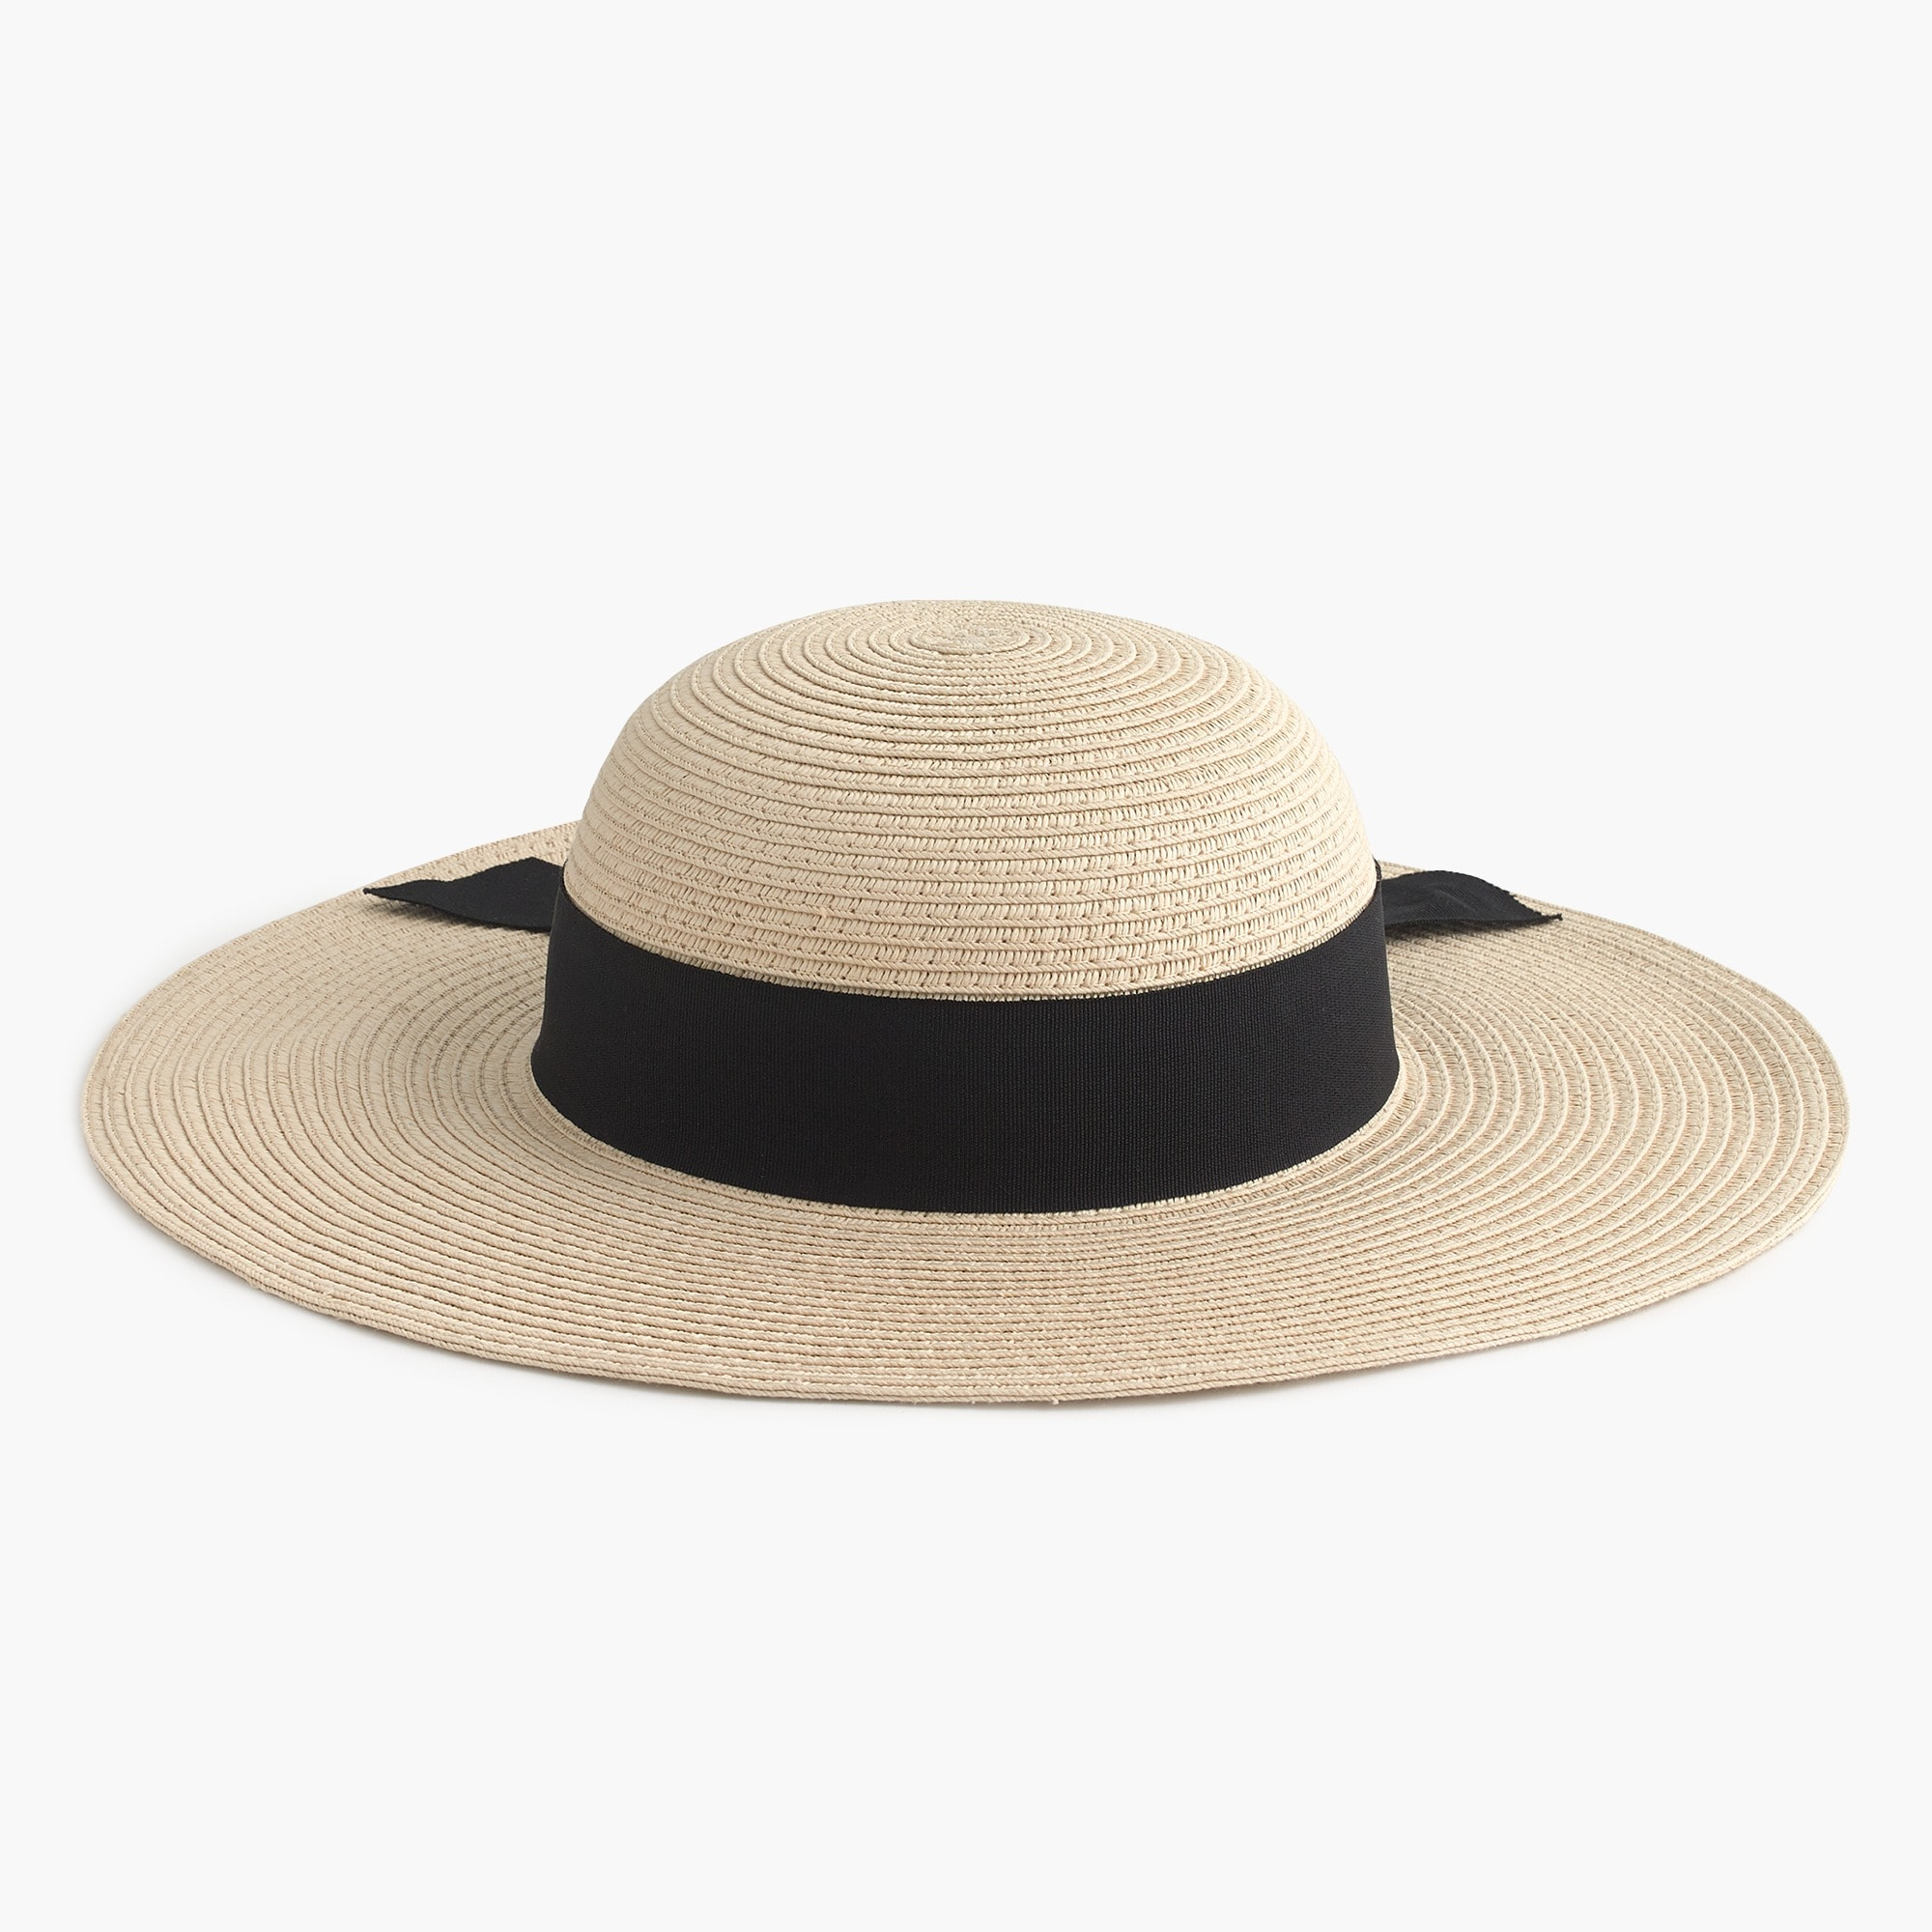 Girls' sun hat with ribbon bow